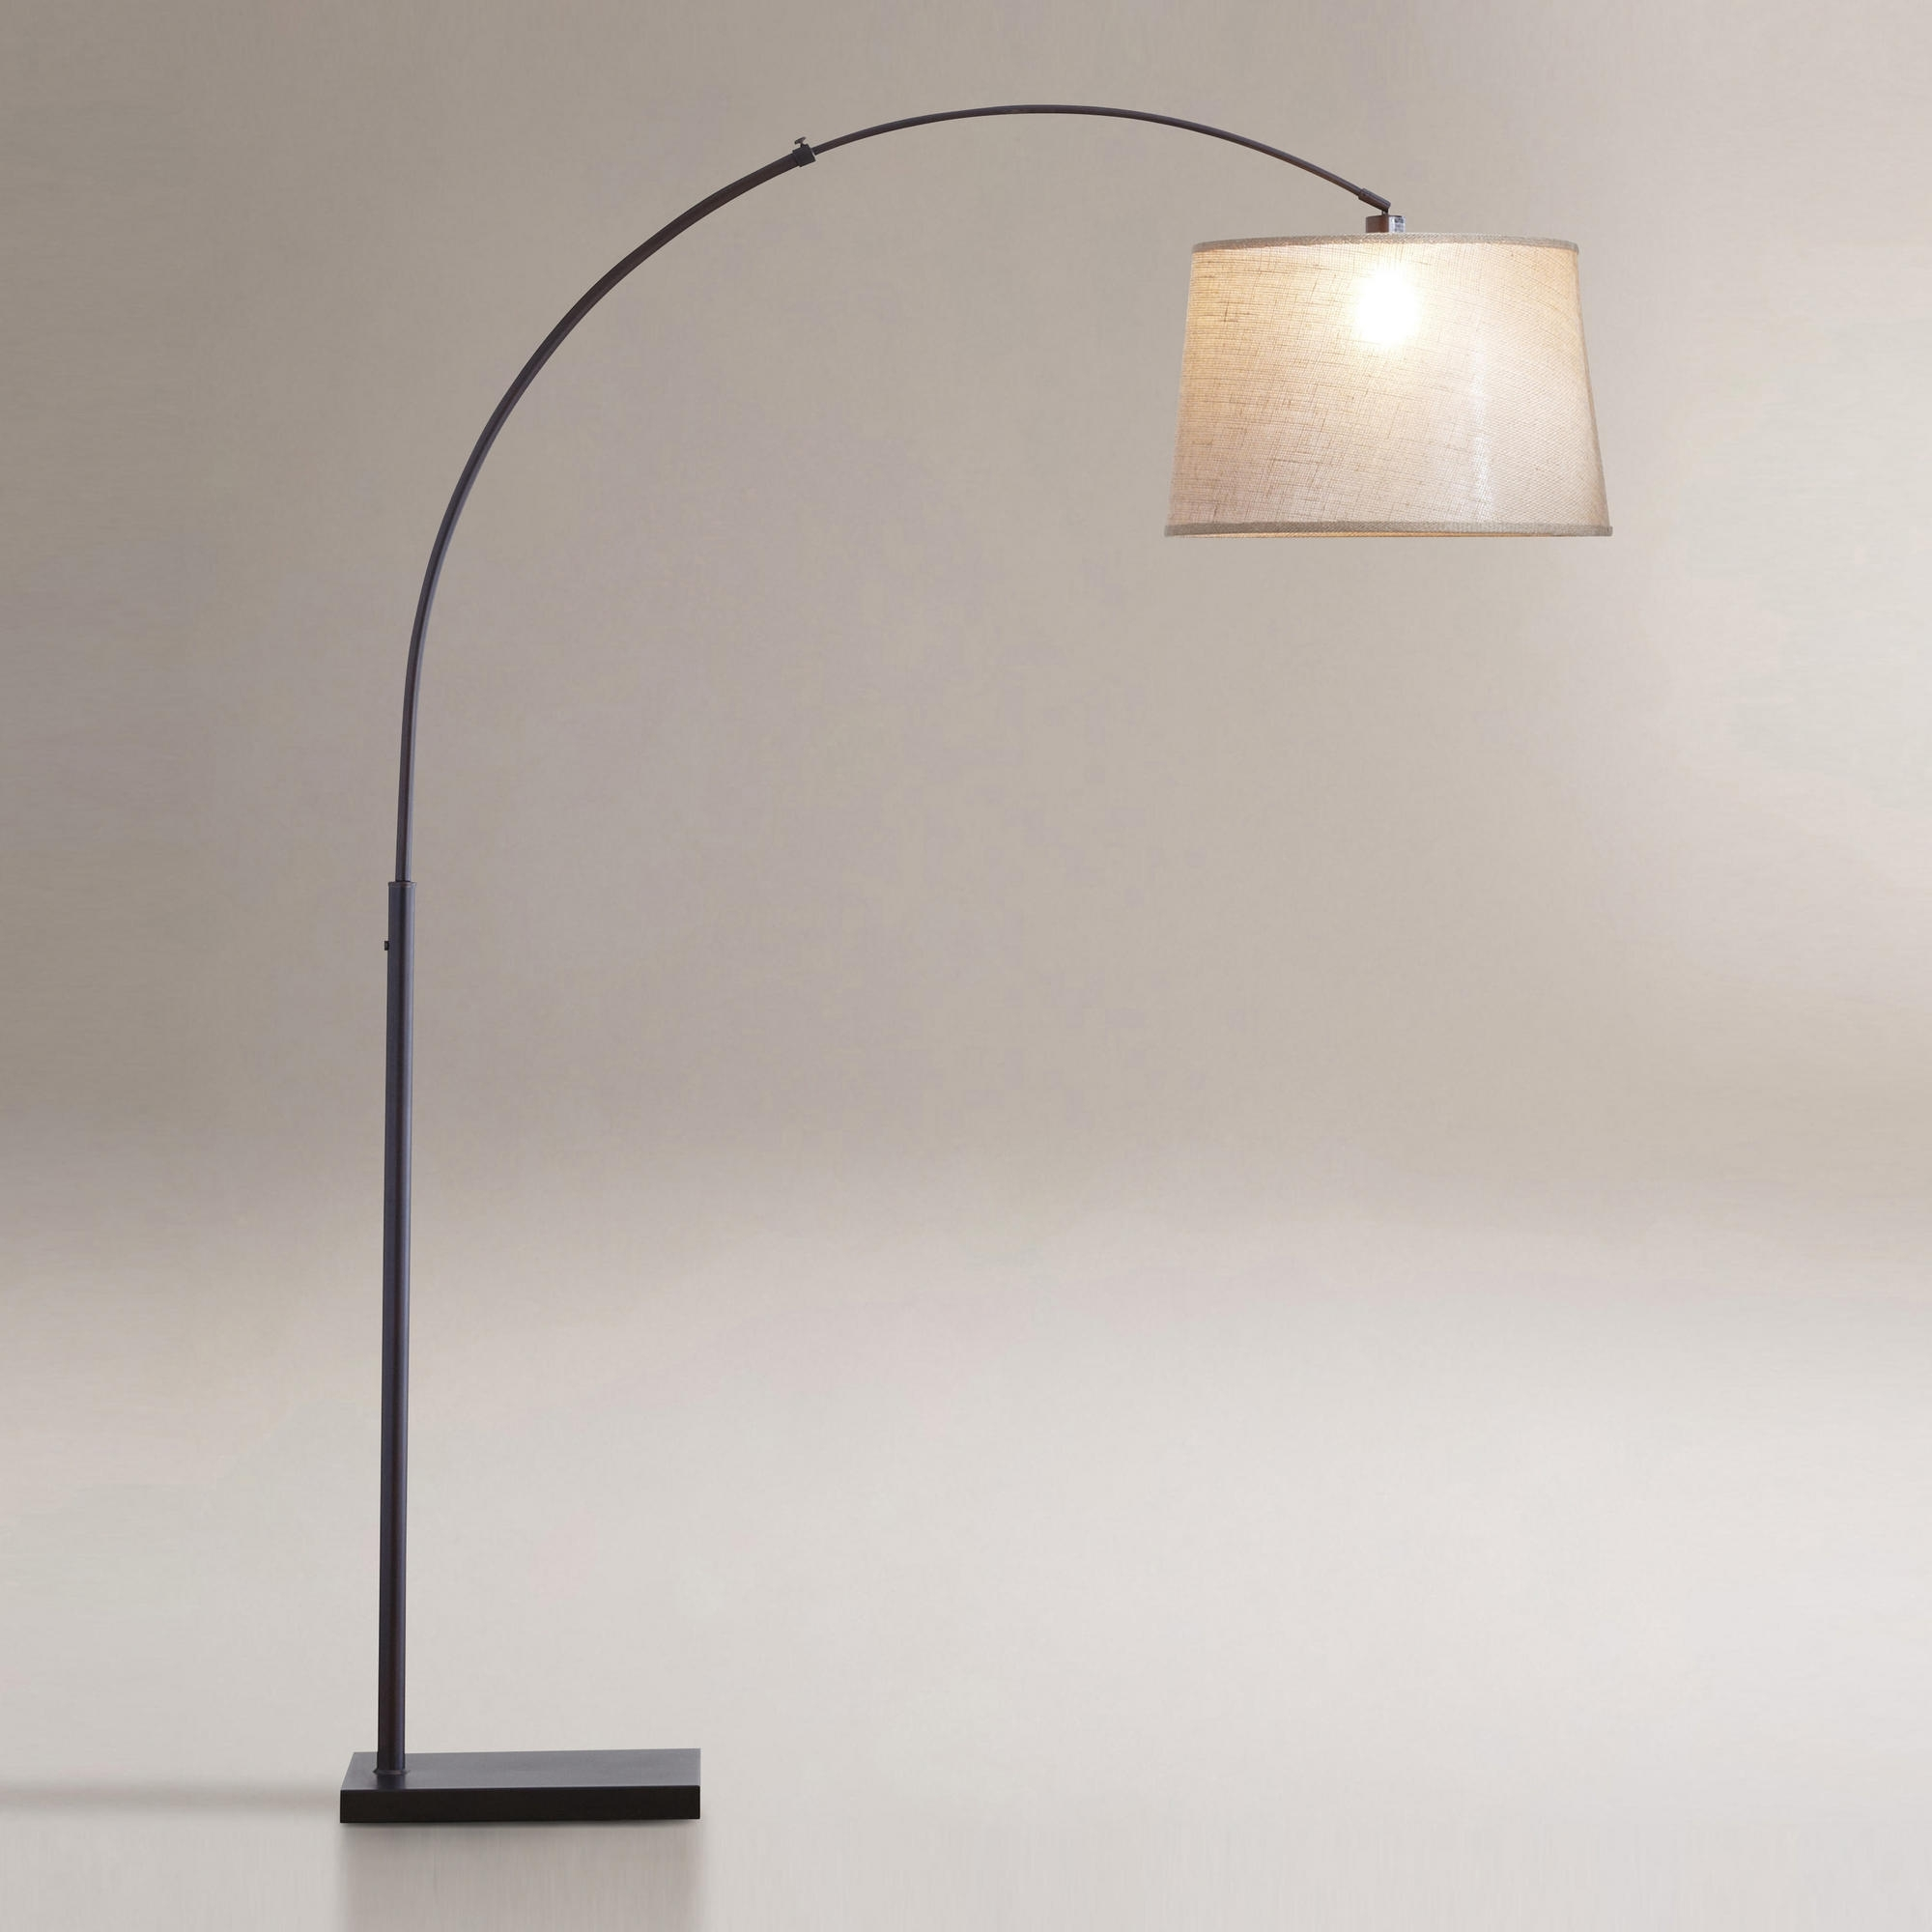 2019 Unique Table Lamps Living Room For Endearing Cool Table Lamps Modern 2 Traditional Night Floor Lamp (View 2 of 20)